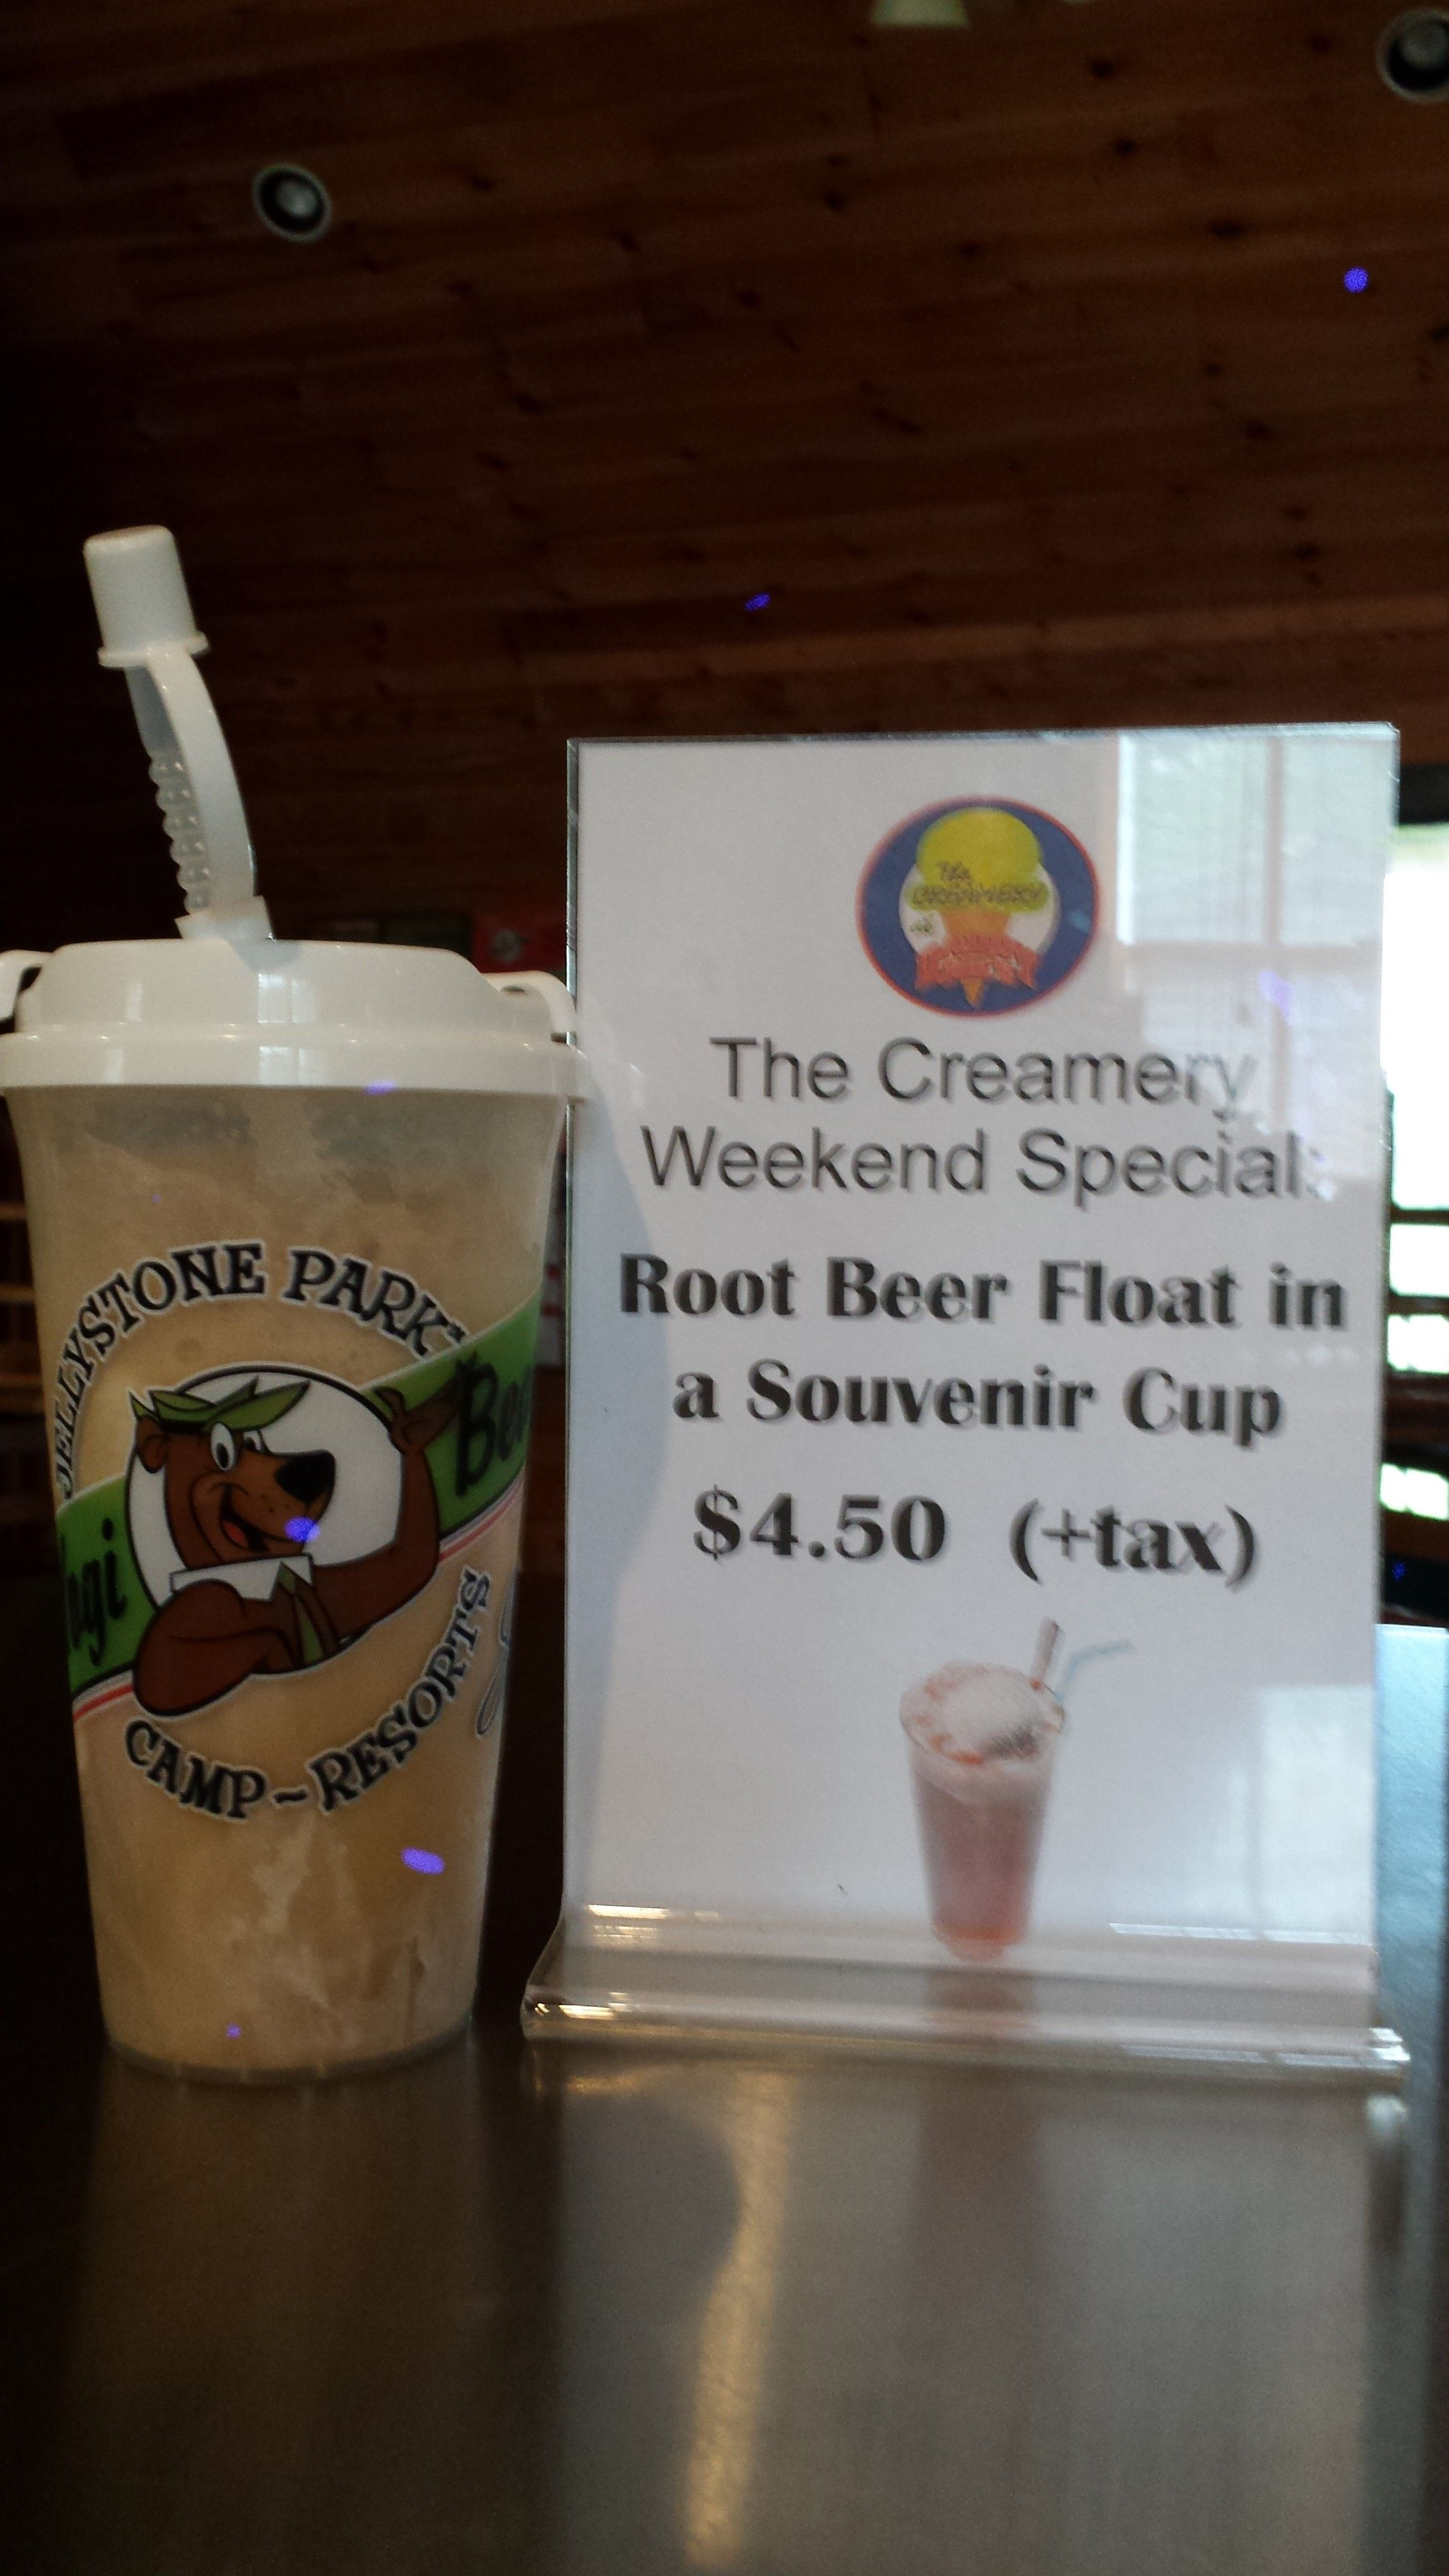 One of our weekend specials at #TheCreamery